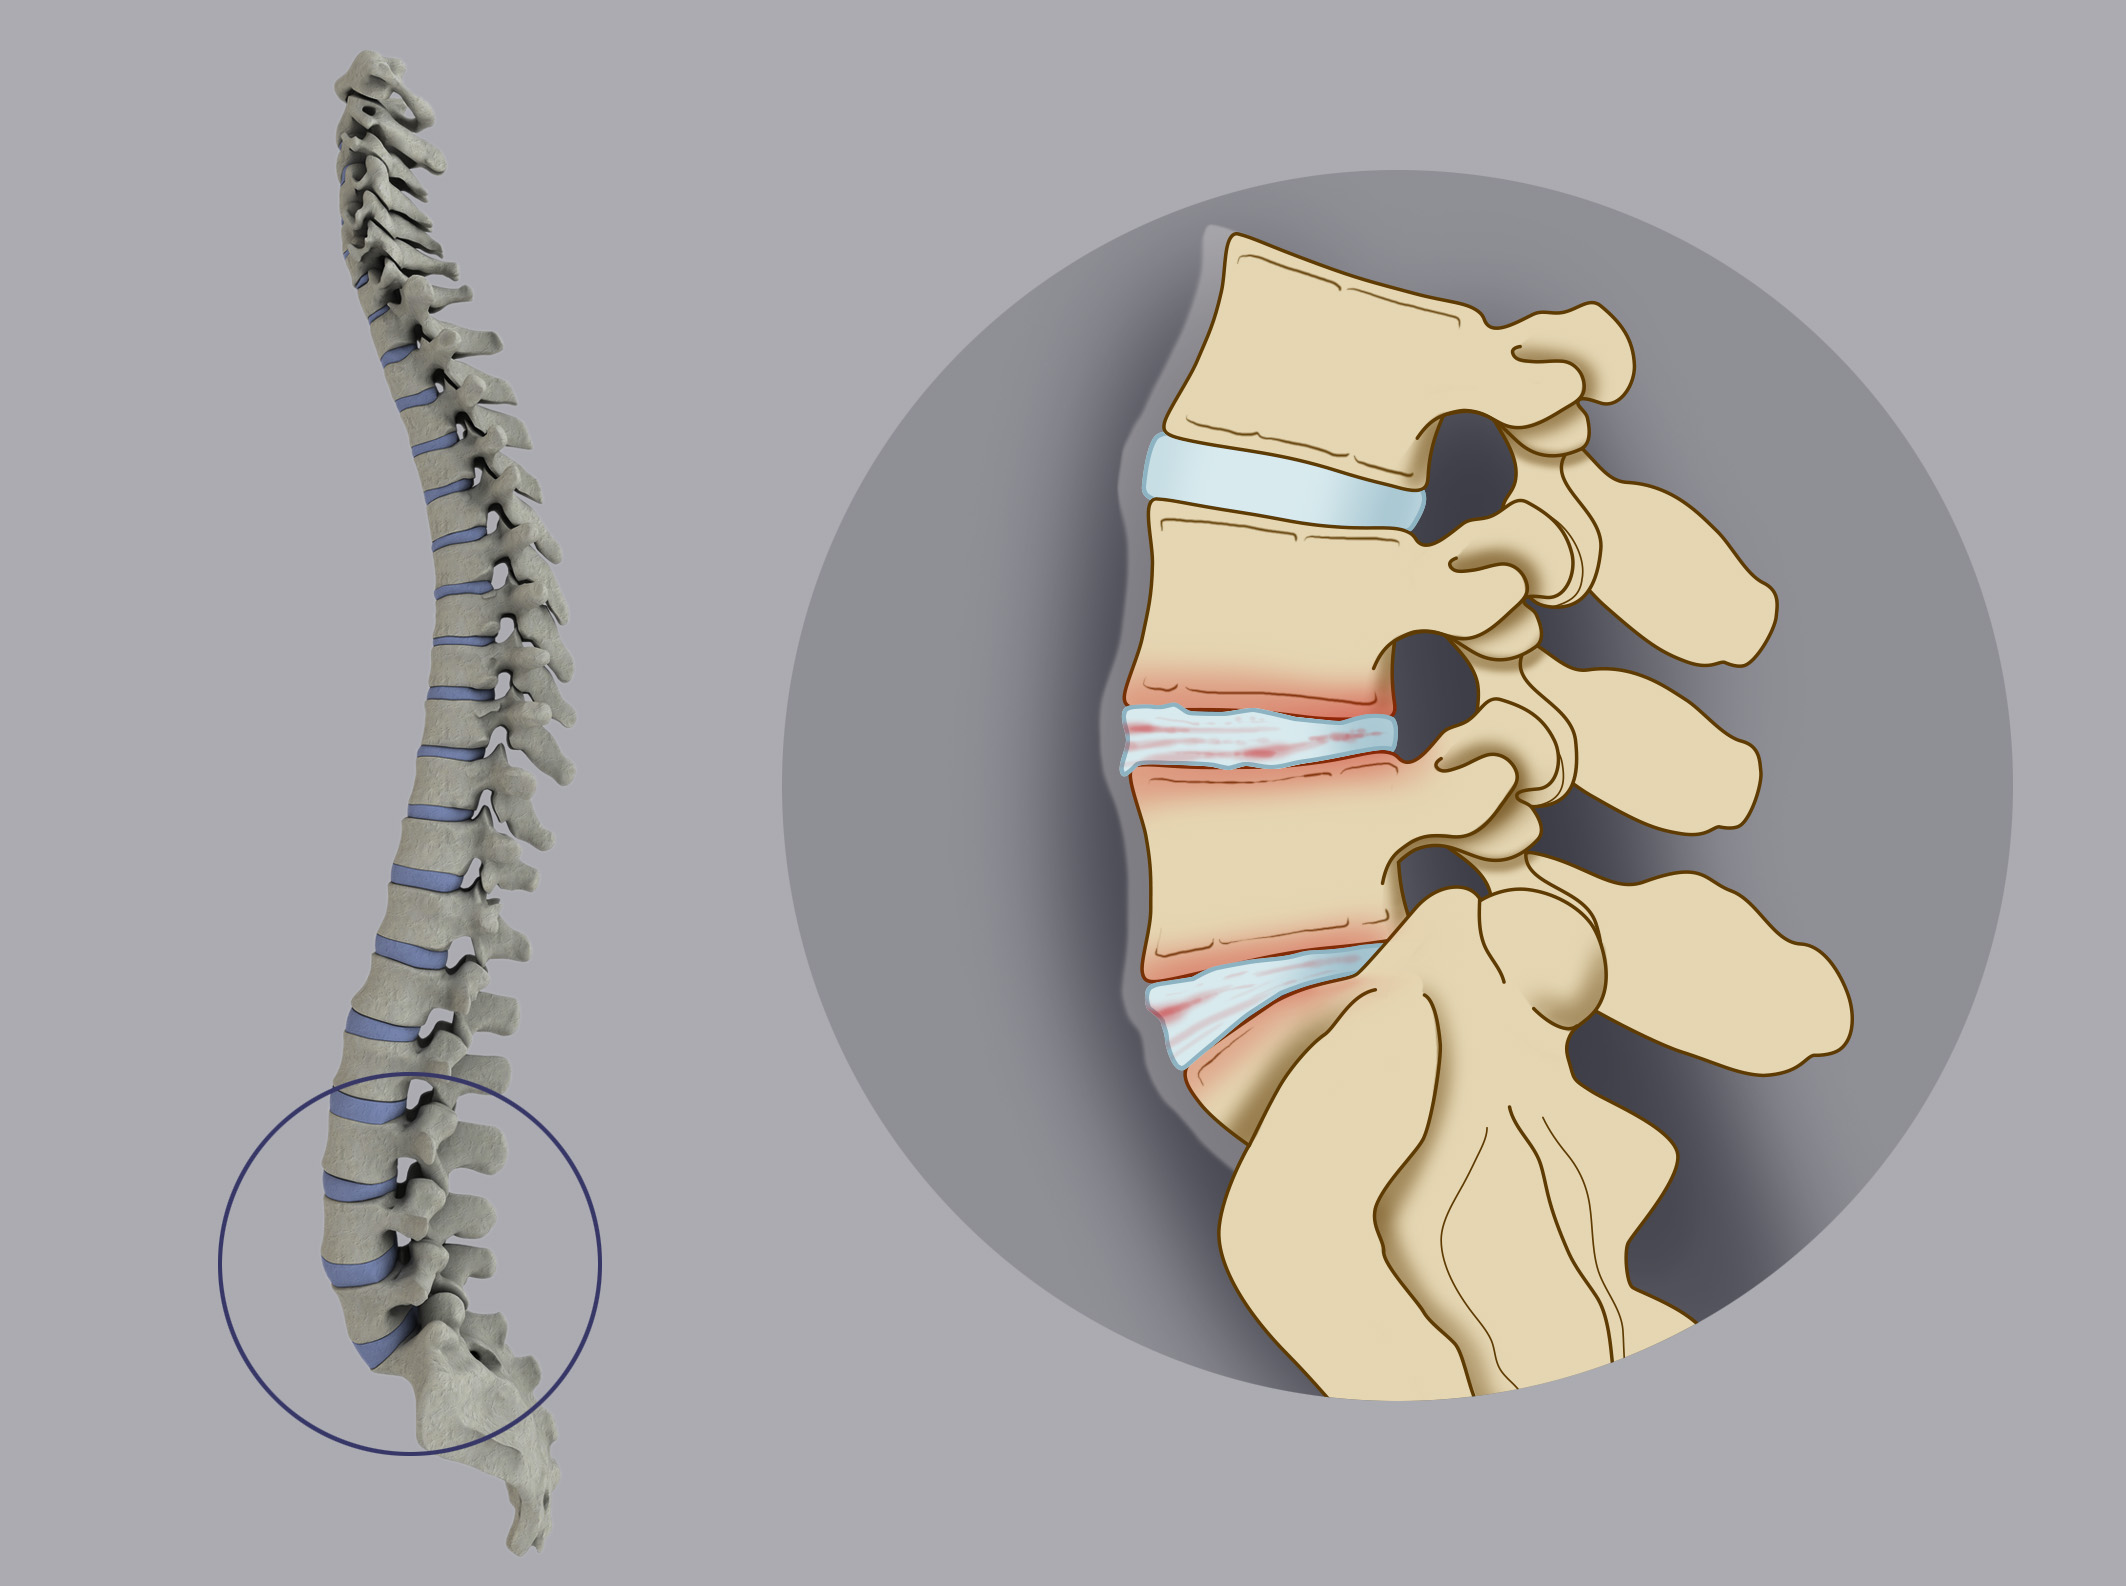 In the micro-instability the degenerated disc causes micro-movements of the vertebrae that slide  between each other, with consequent inflammation of the disc plate or of the vertebral joint and  onset of back pain, but the spine maintains its correct alignment.